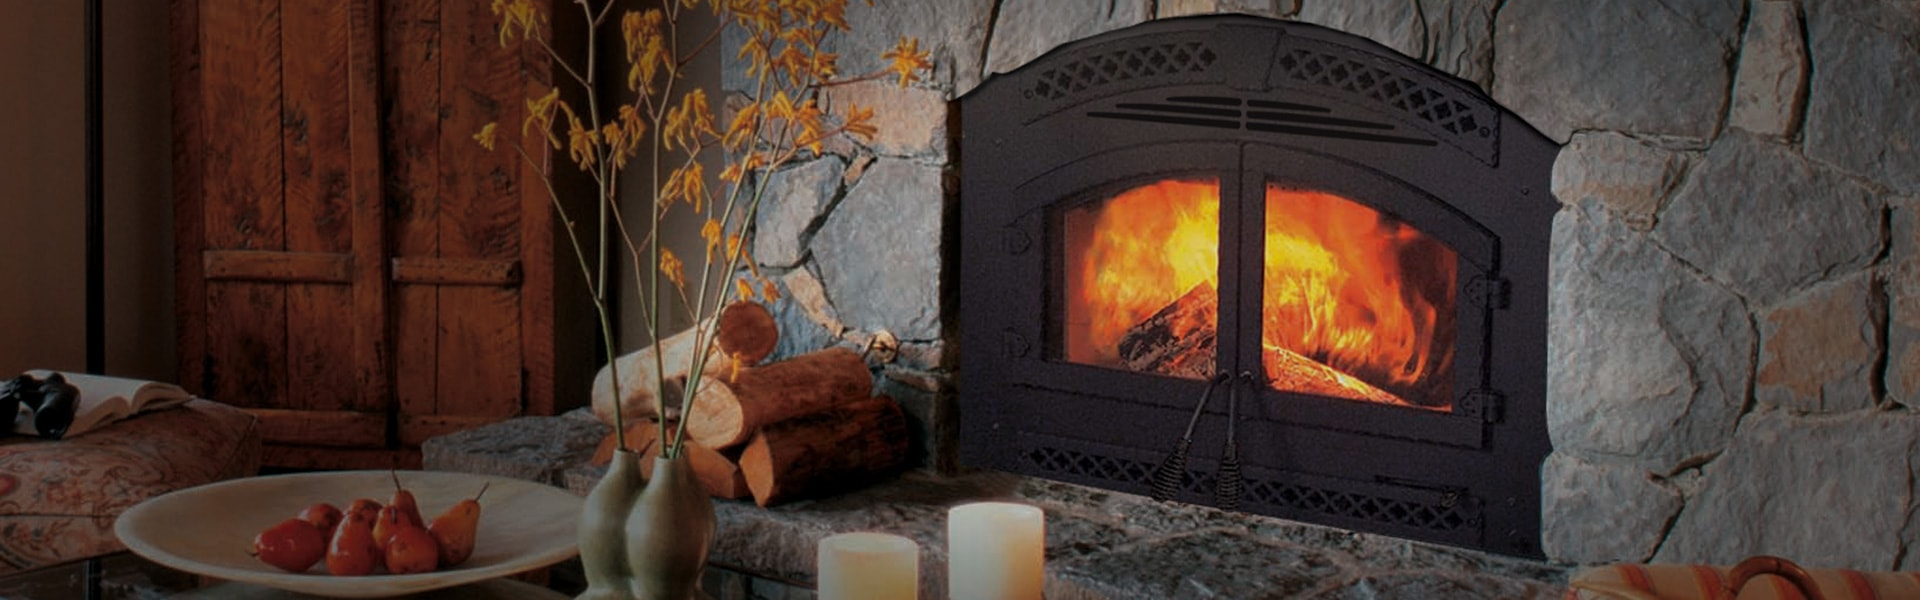 <p>Northstar EPA Certified Wood-burning Fireplace</p>